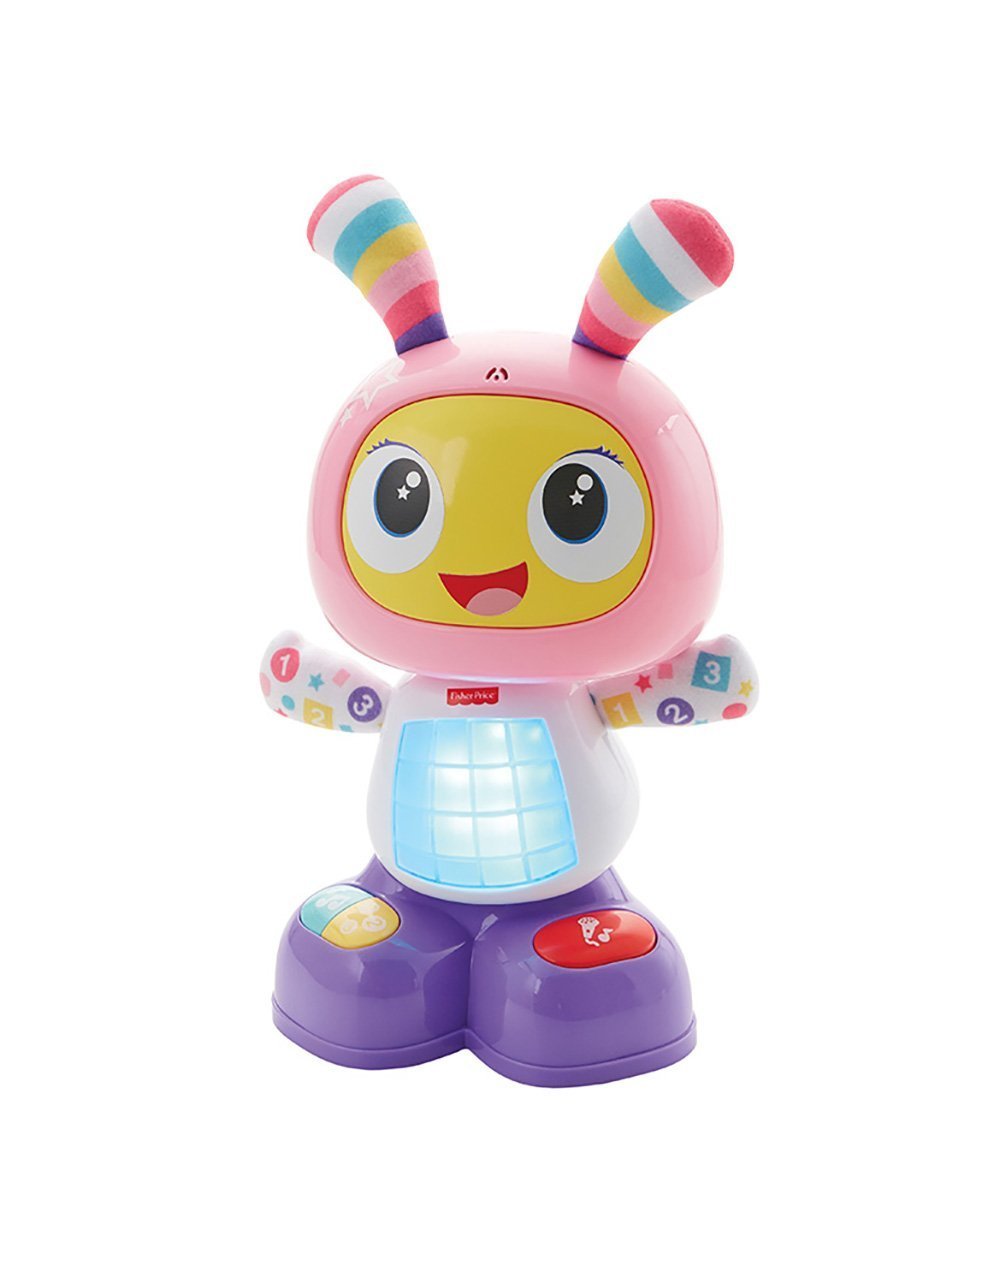 Amazon.com: Fisher Price - Dance & Move Beatbelle: Toys & Games